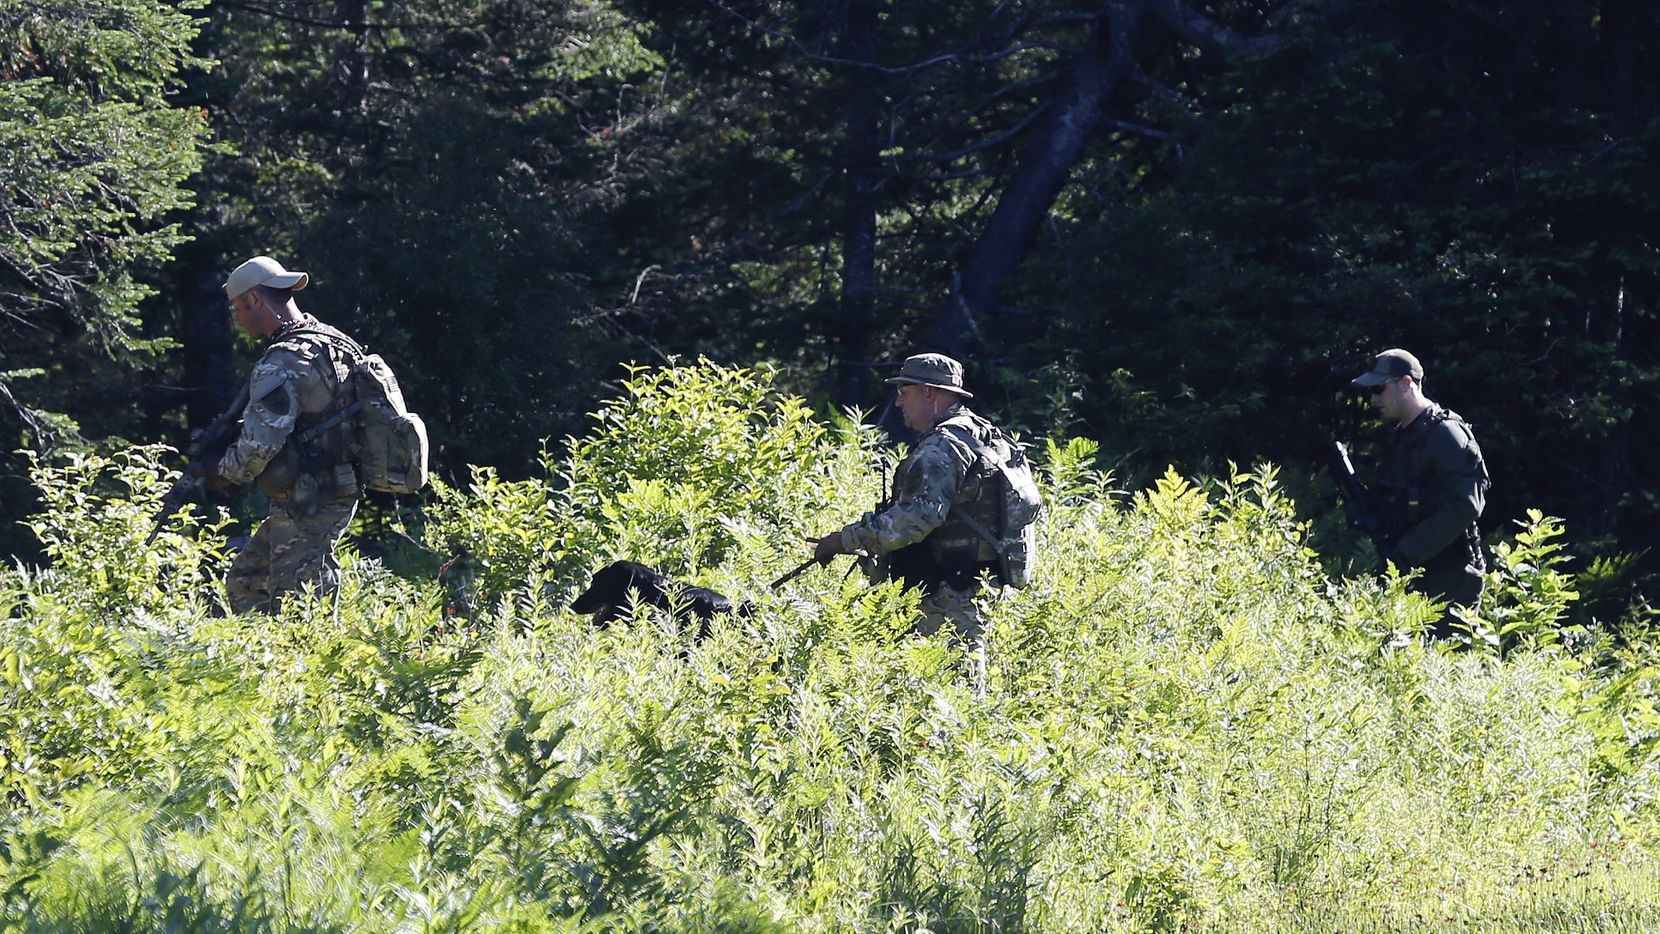 Law enforcement officers walk into the woods as the search continues for two escaped prisoners from Clinton Correctional Facility, on Wednesday, June 24, 2015, in Mountain View, N.Y.  Hundreds of searchers checked ATV trails and logging roads and went door-to-door in far northern New York trying to close in on David Sweat and Richard Matt, who escaped from the maximum-security prison more than two weeks ago. (AP Photo/Mike Groll)